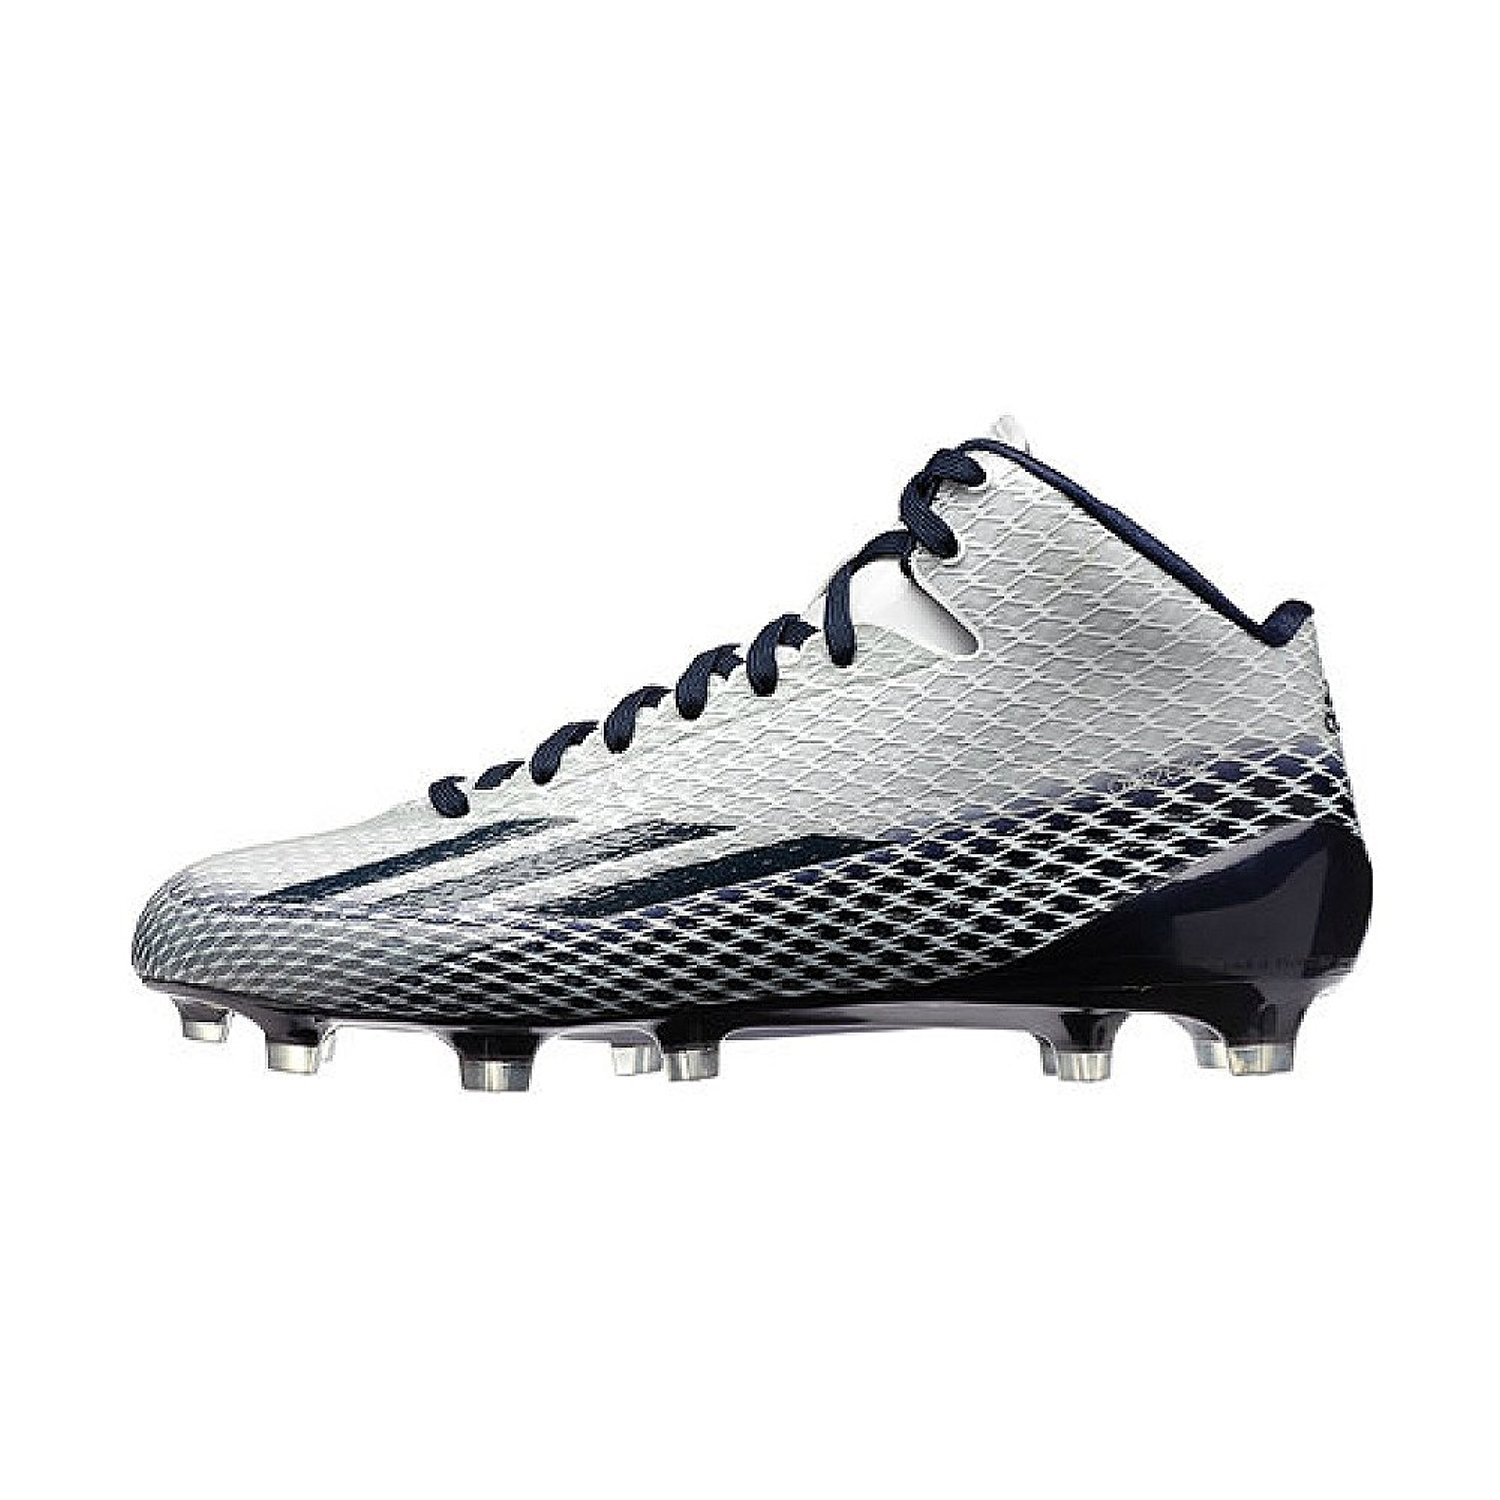 Star 3.0 Mid Mens Football Cleats White